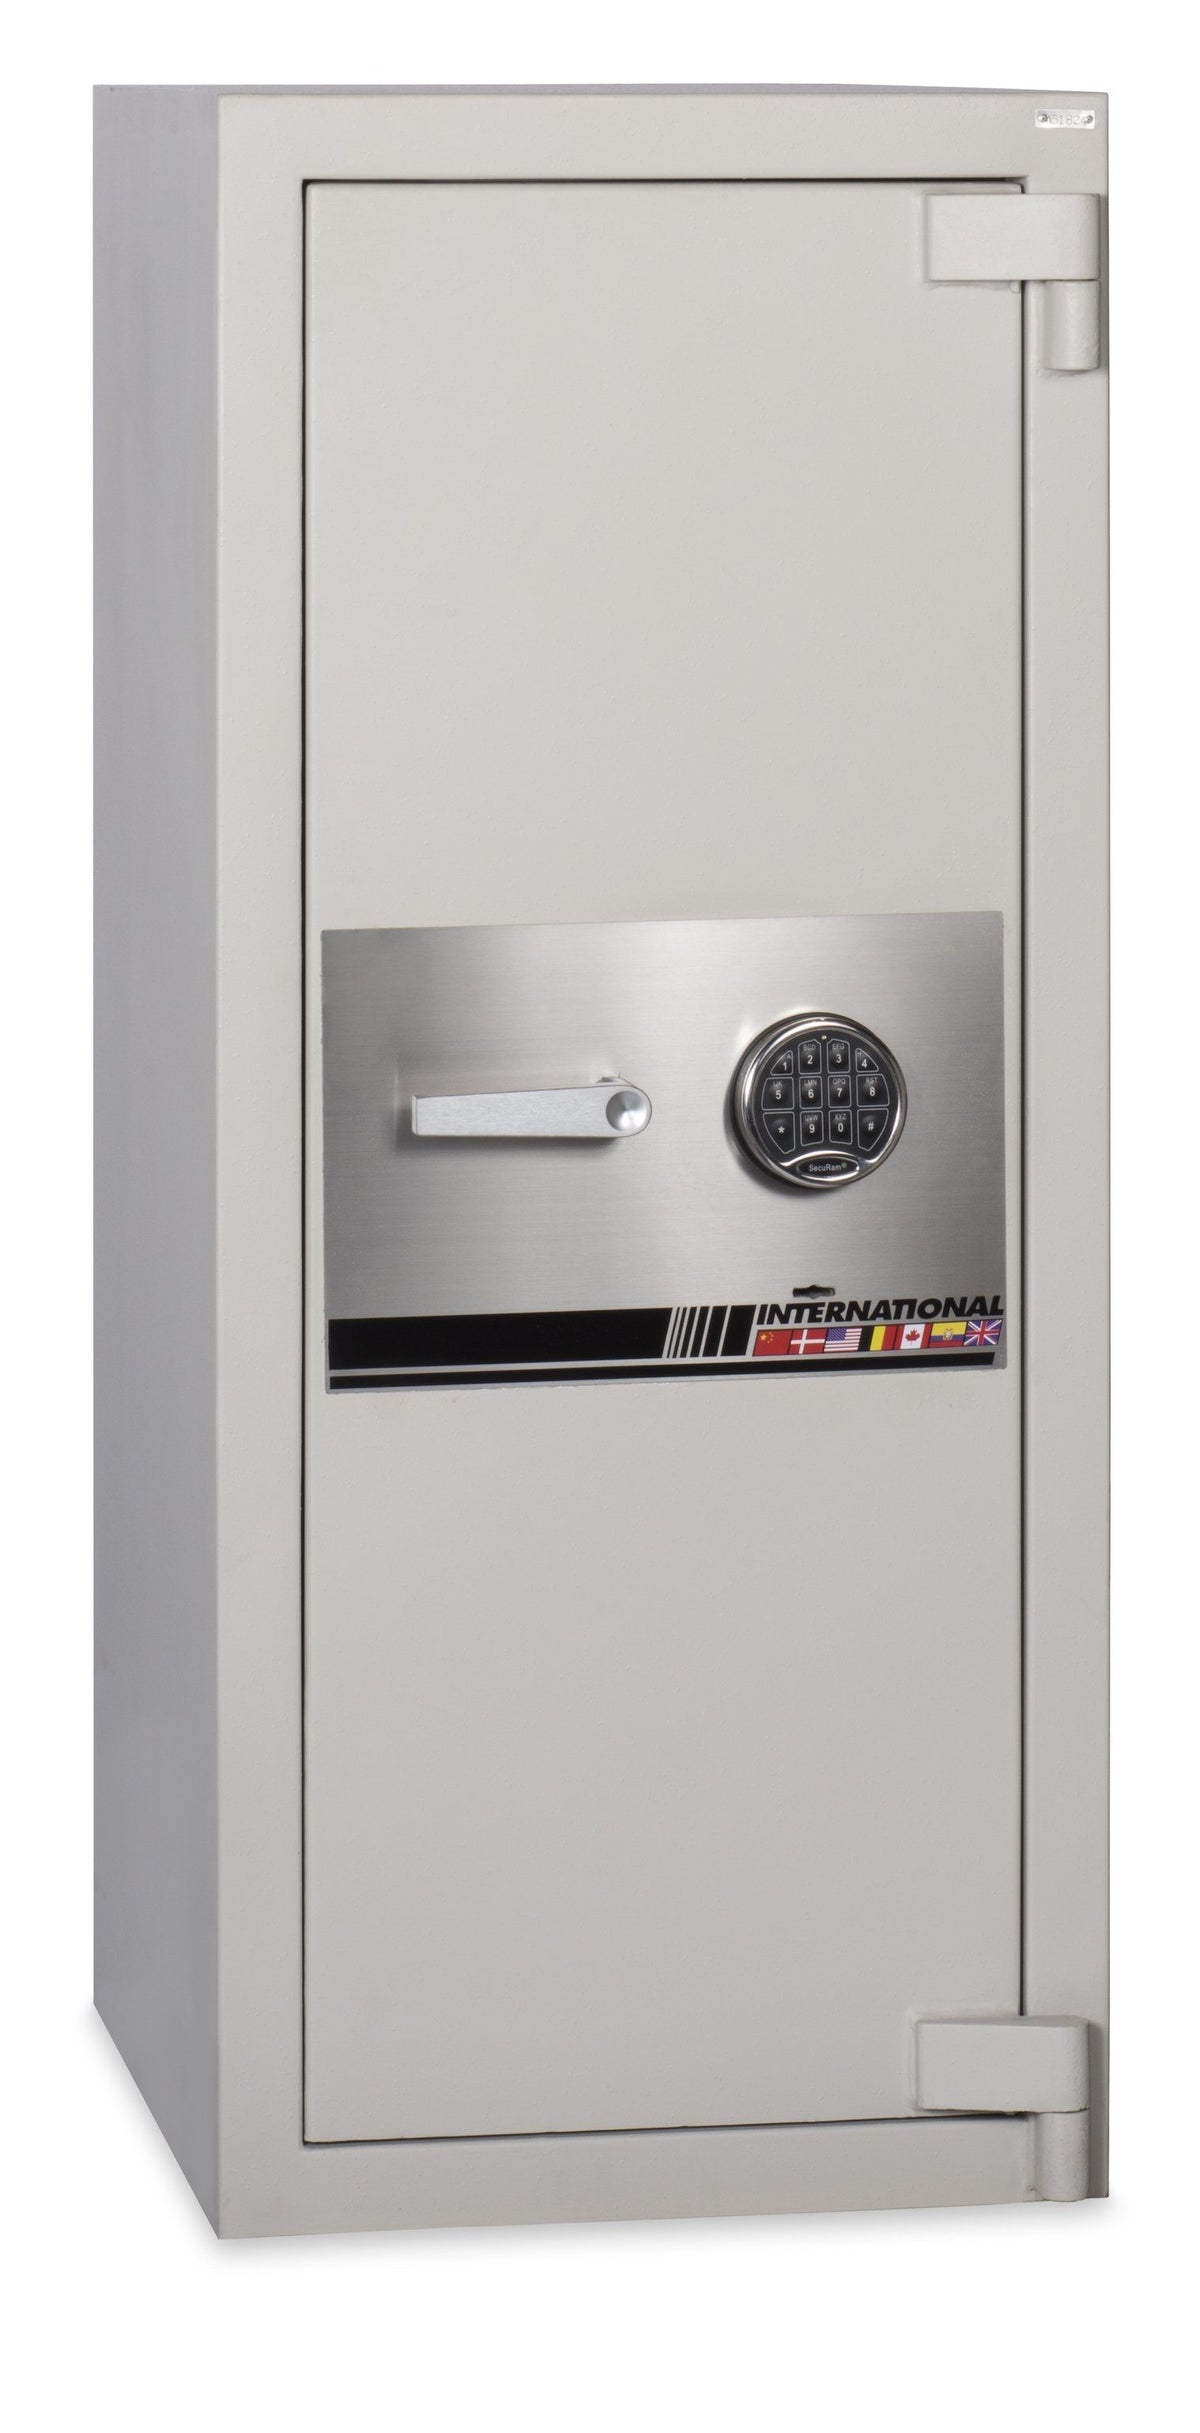 Burglar Fire Safe Products - SafeandVaultStore SC-4517 Burglar & Fire Safe